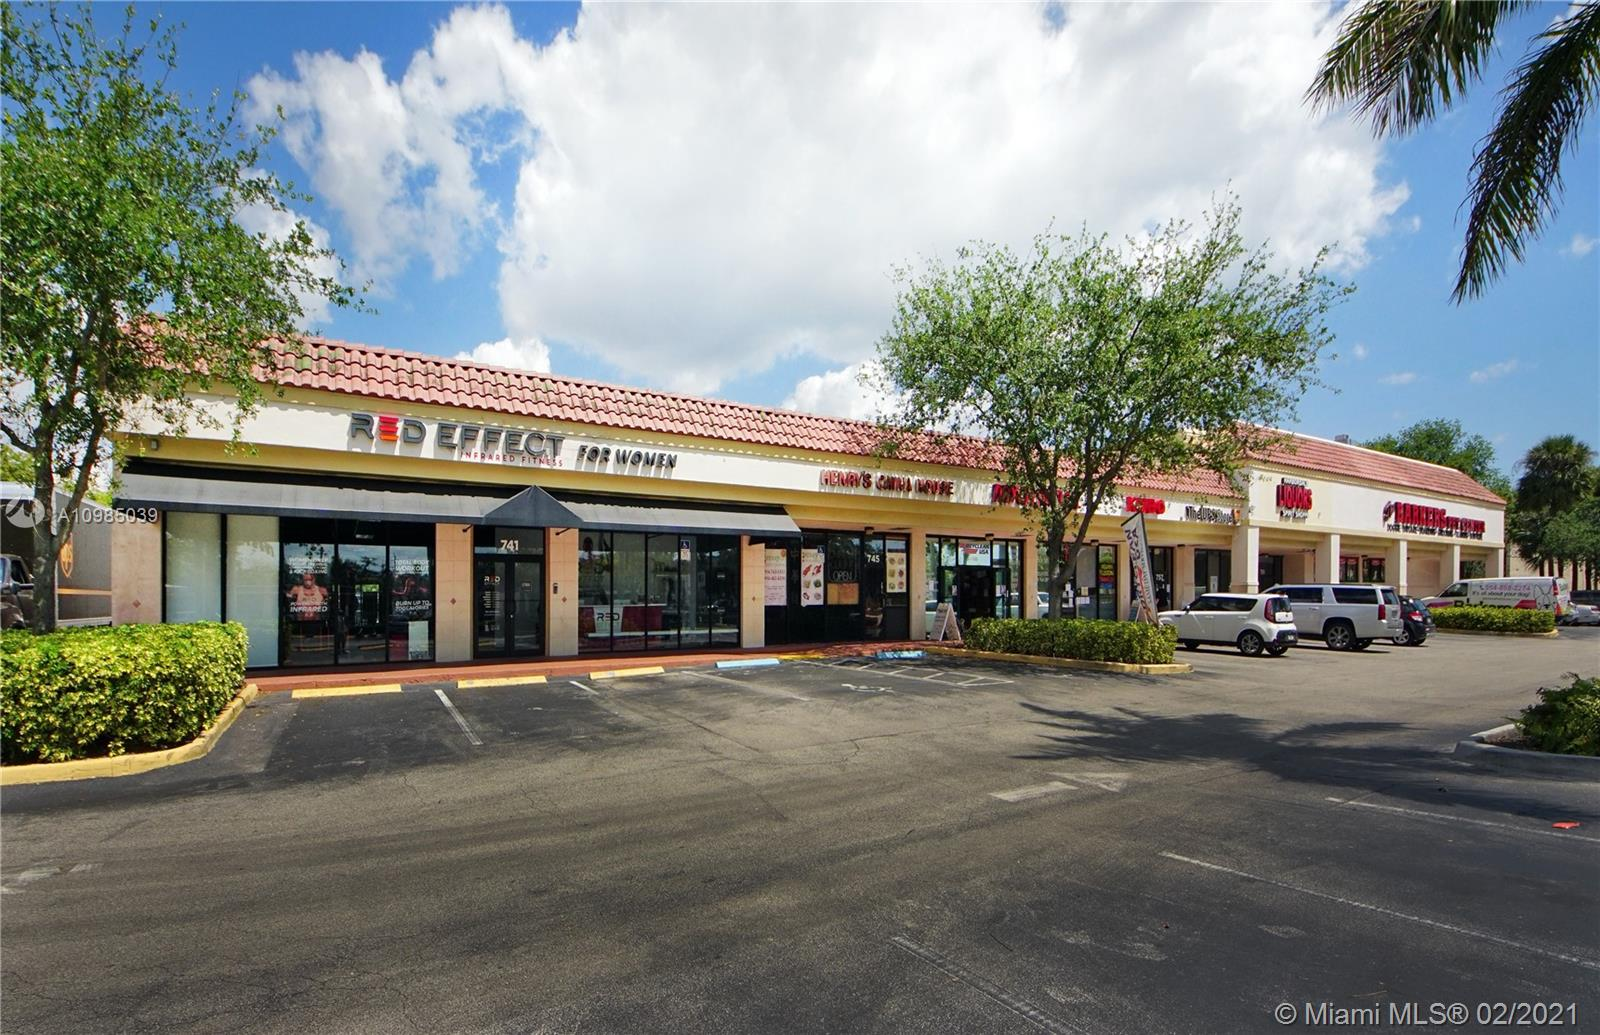 2 spaces 2,165 sq ft at 759 and 3,239 sq ft at 737. Plug and play retail space is perfect for fitness center, studio or gym but is flexible to have open retail area, office space along with conference and private rooms. The 2,165 has an open concept and can be easily built to your needs. The 3,239 leasable sq ft, has plenty of room to position you ultimate business set-up and streamline the floorplan for efficiency and work/customer flow. Tons of natural lighting and high ceilings. Large Signage is great for 17th street visibility with a massive traffic count and local population of over 227,000 residents within a 5-mile radius, FLL Airport, Beaches, The Port, downtown and cruise ship tourists position daytime population and 17th Street Plaza the ultimate in retail/flex opportunity.NNN .